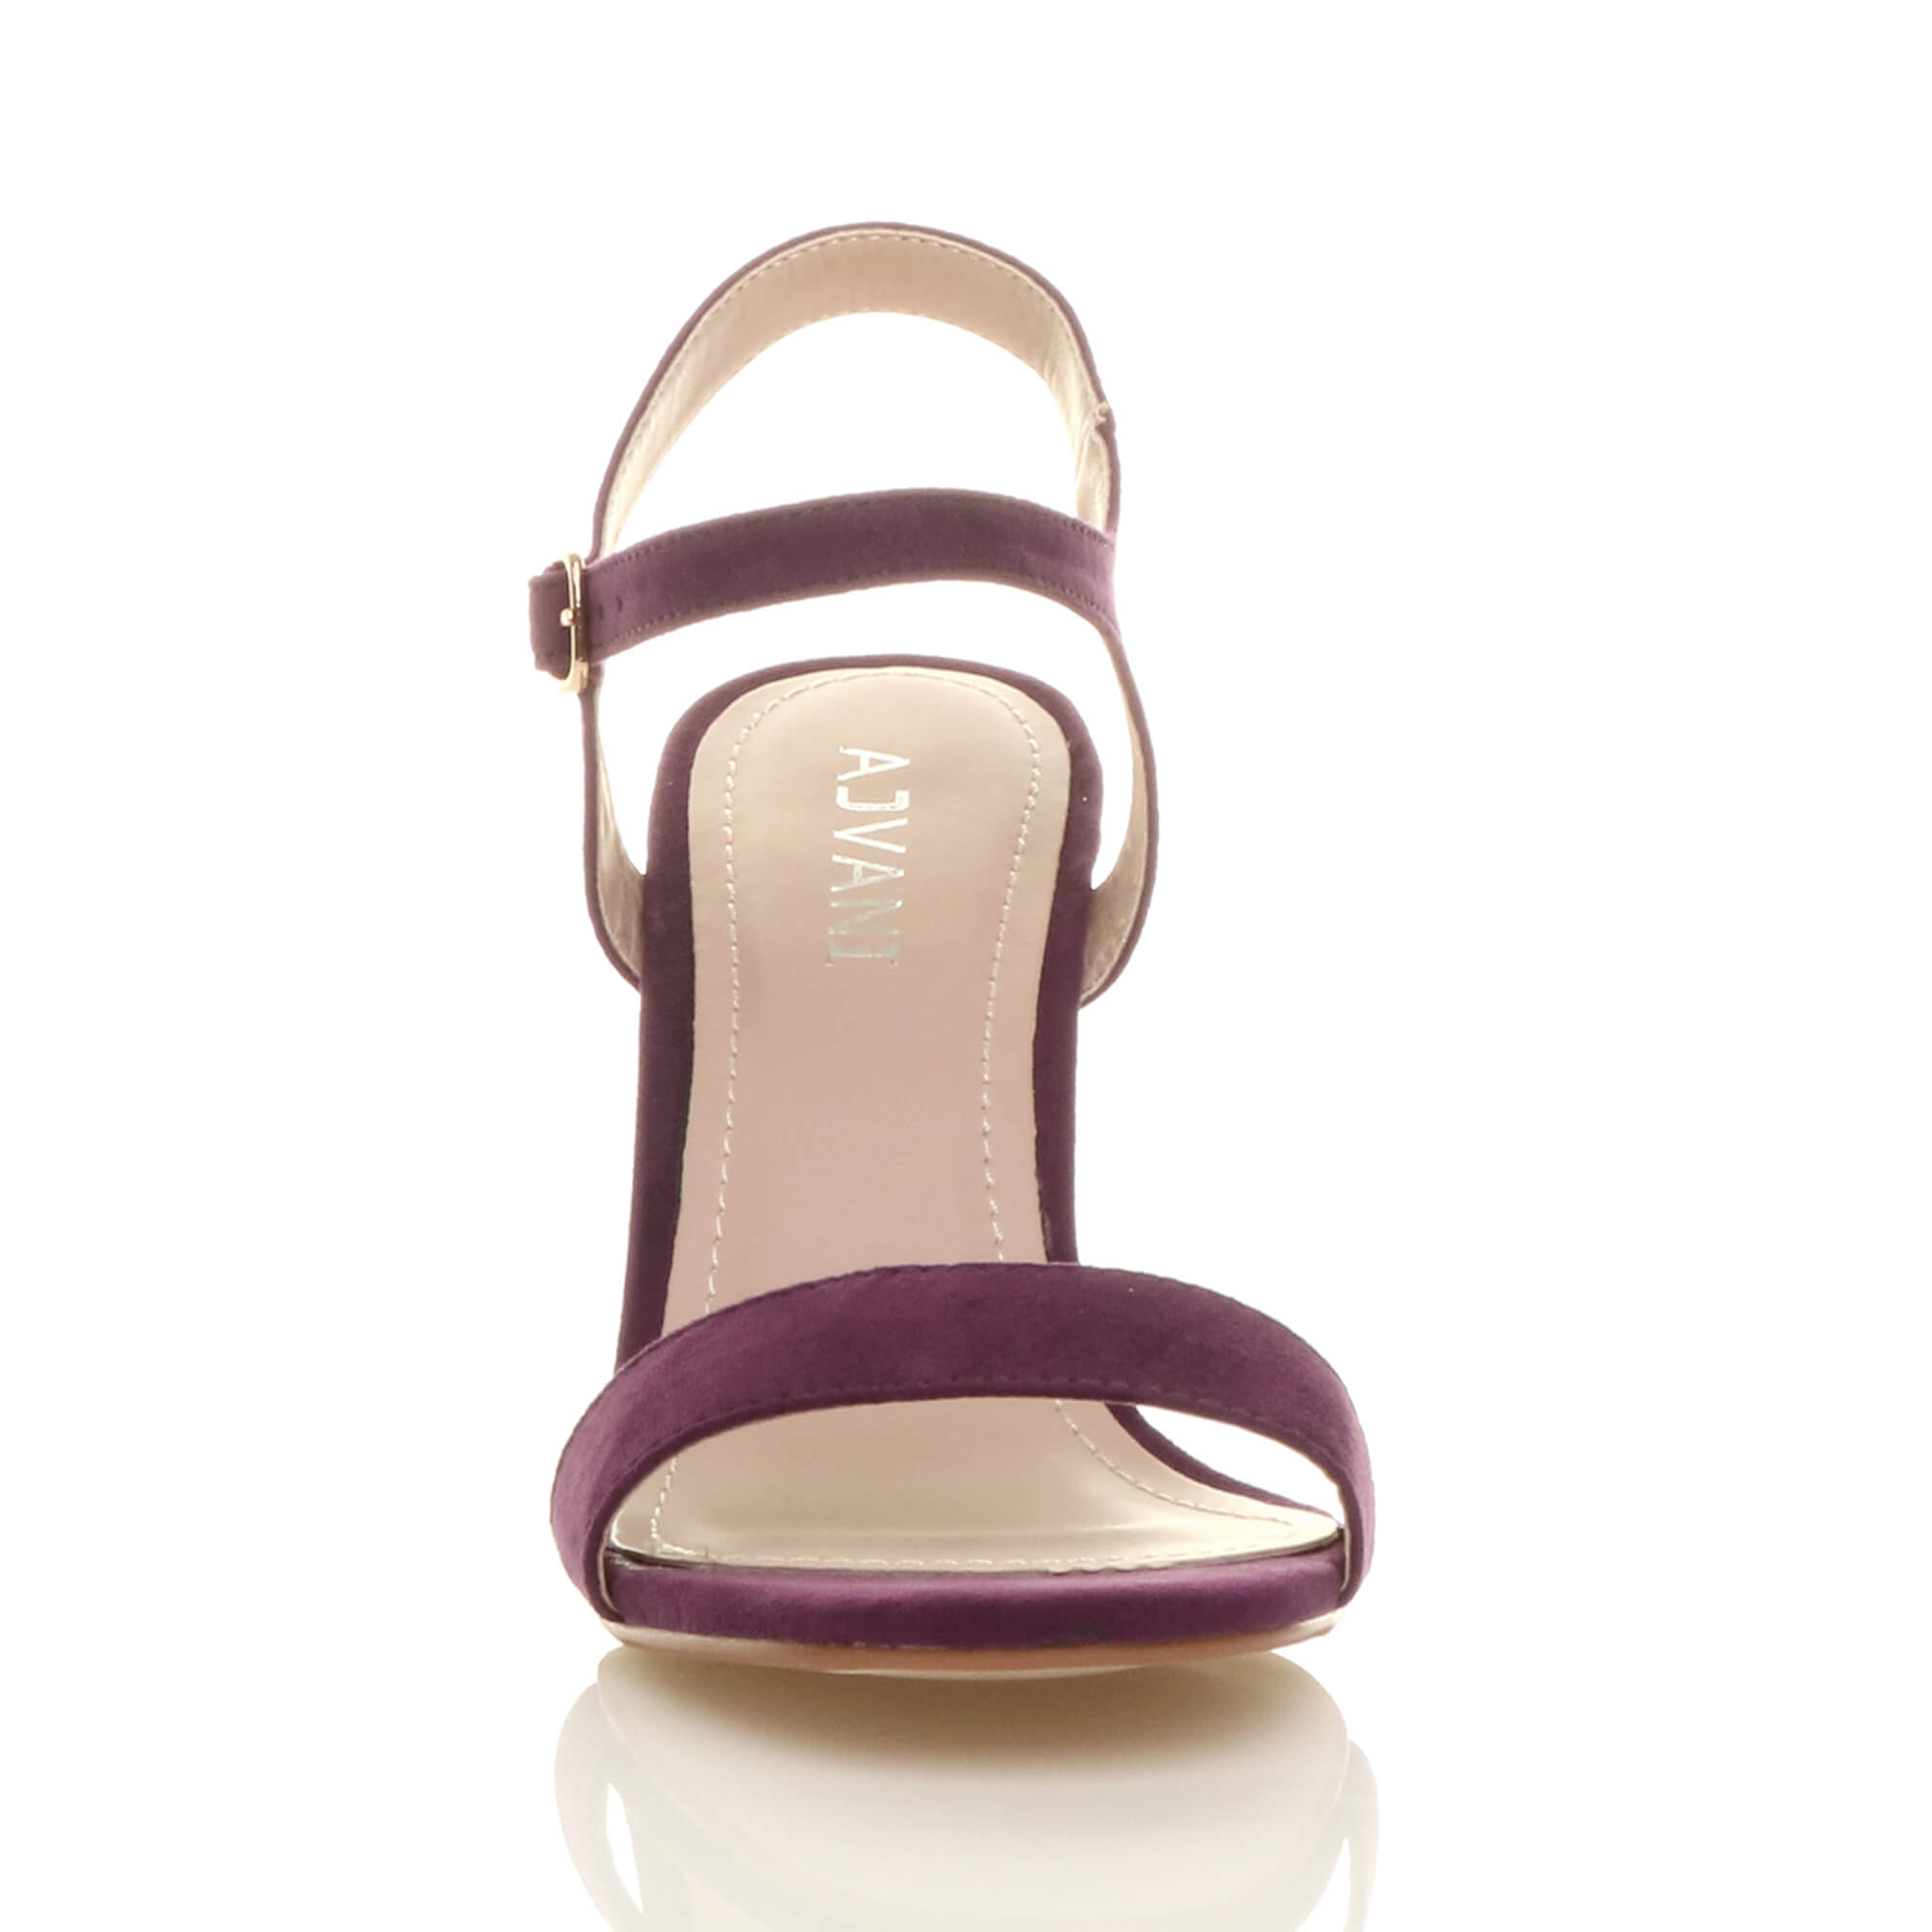 WOMENS-LADIES-HIGH-HEEL-BUCKLE-STRAPPY-BASIC-BARELY-THERE-SANDALS-SHOES-SIZE thumbnail 111